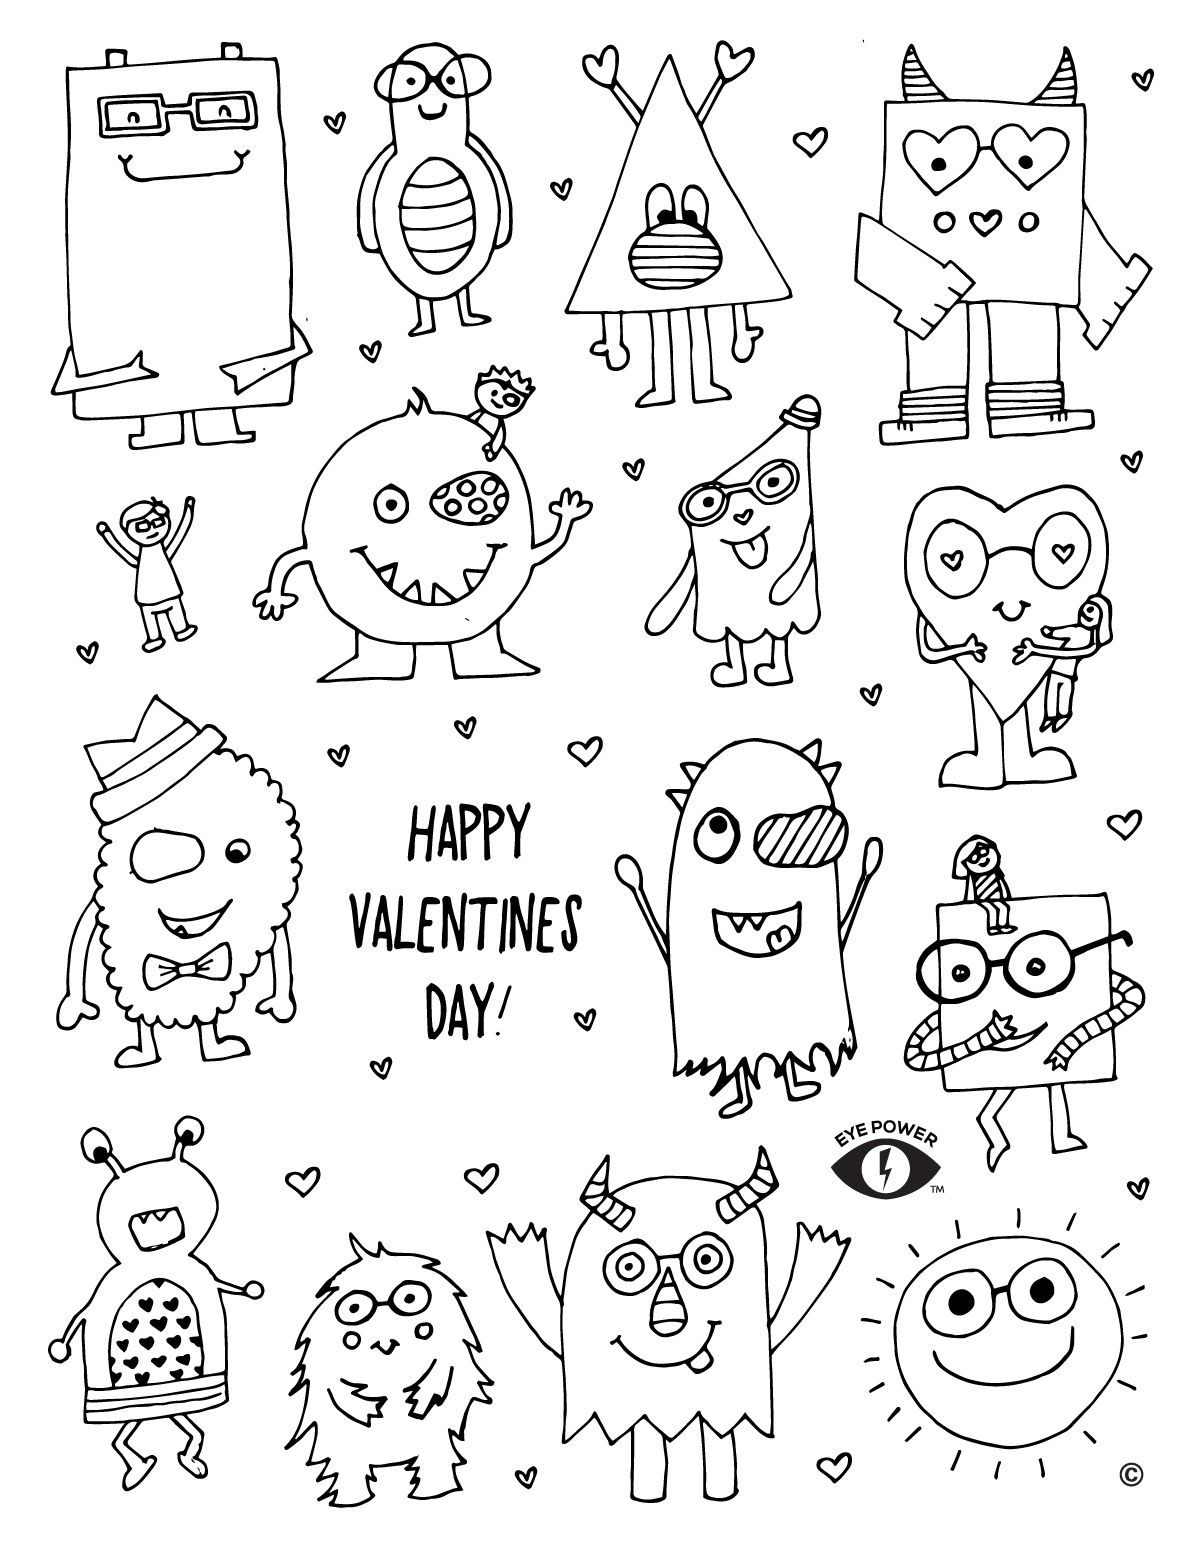 Free Valentines Coloring Page Printable | Valentine ...